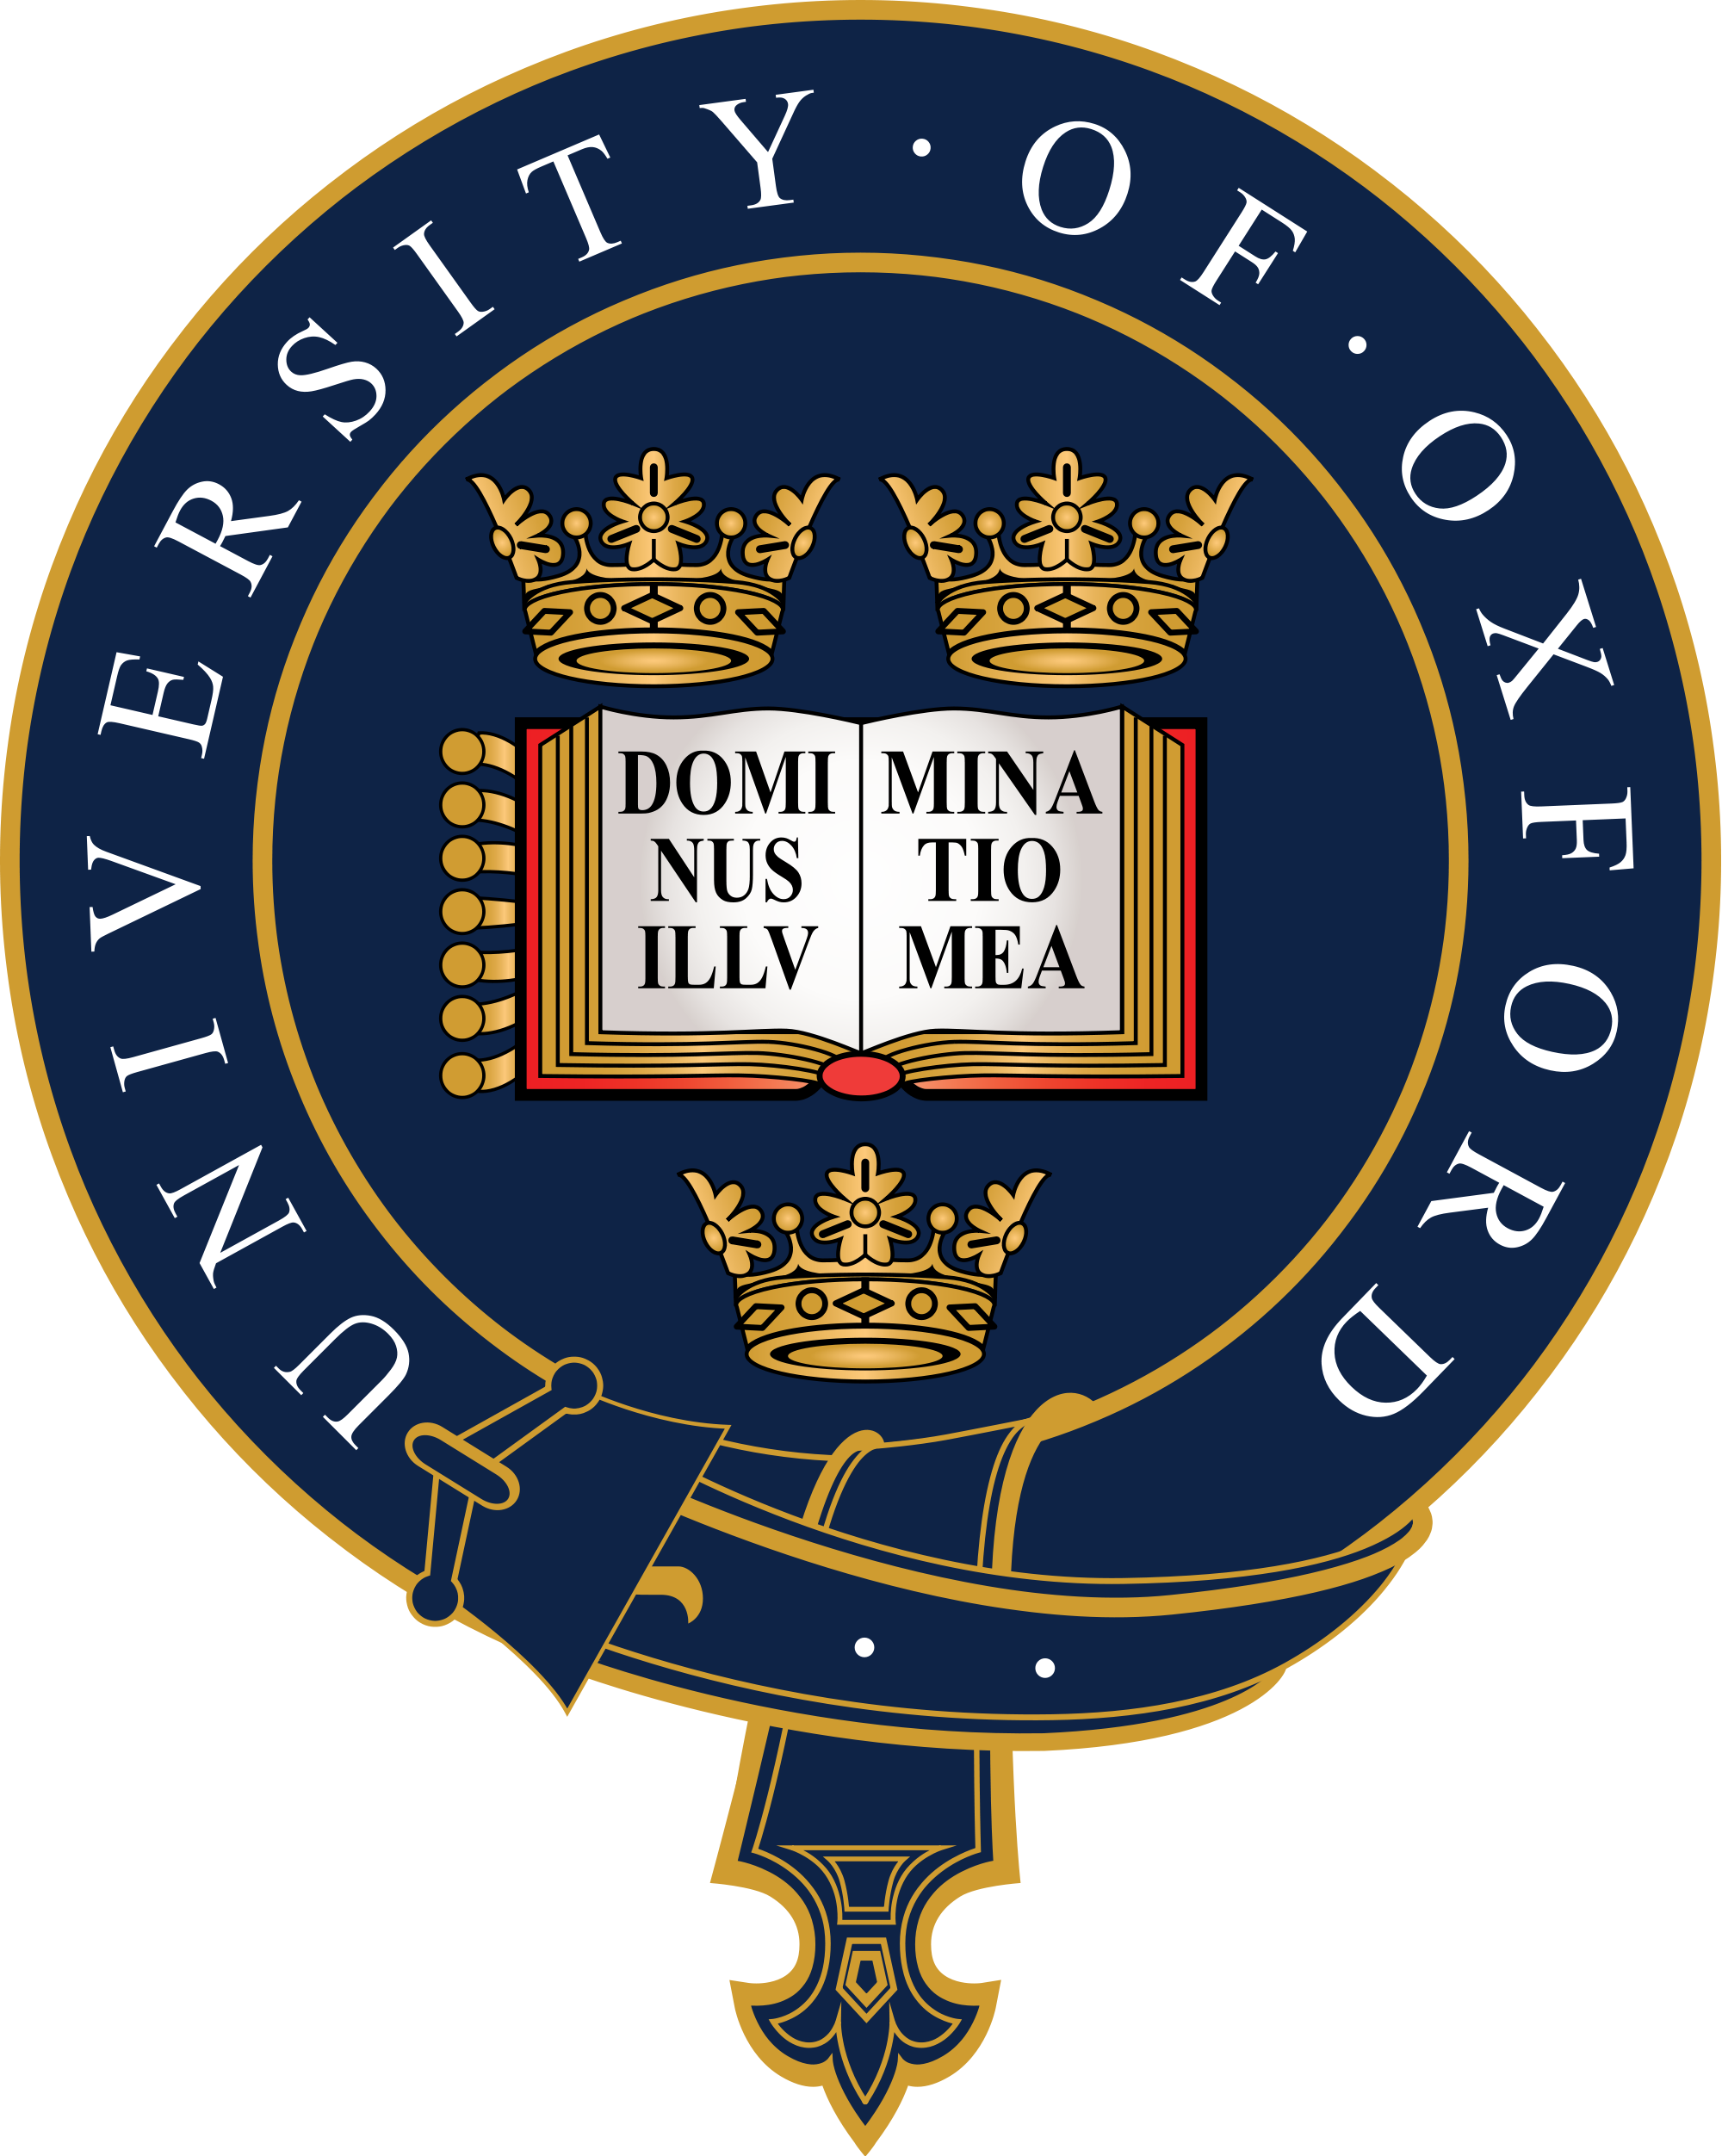 University Of Oxford Coat Of Arms شعار النبالة Pinterest - Where is oxford located